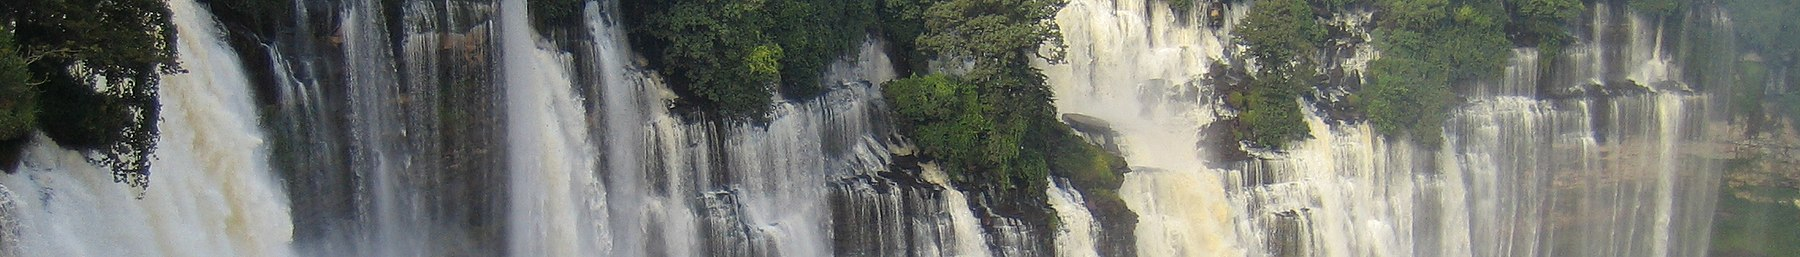 Kalandula waterfalls in Malange